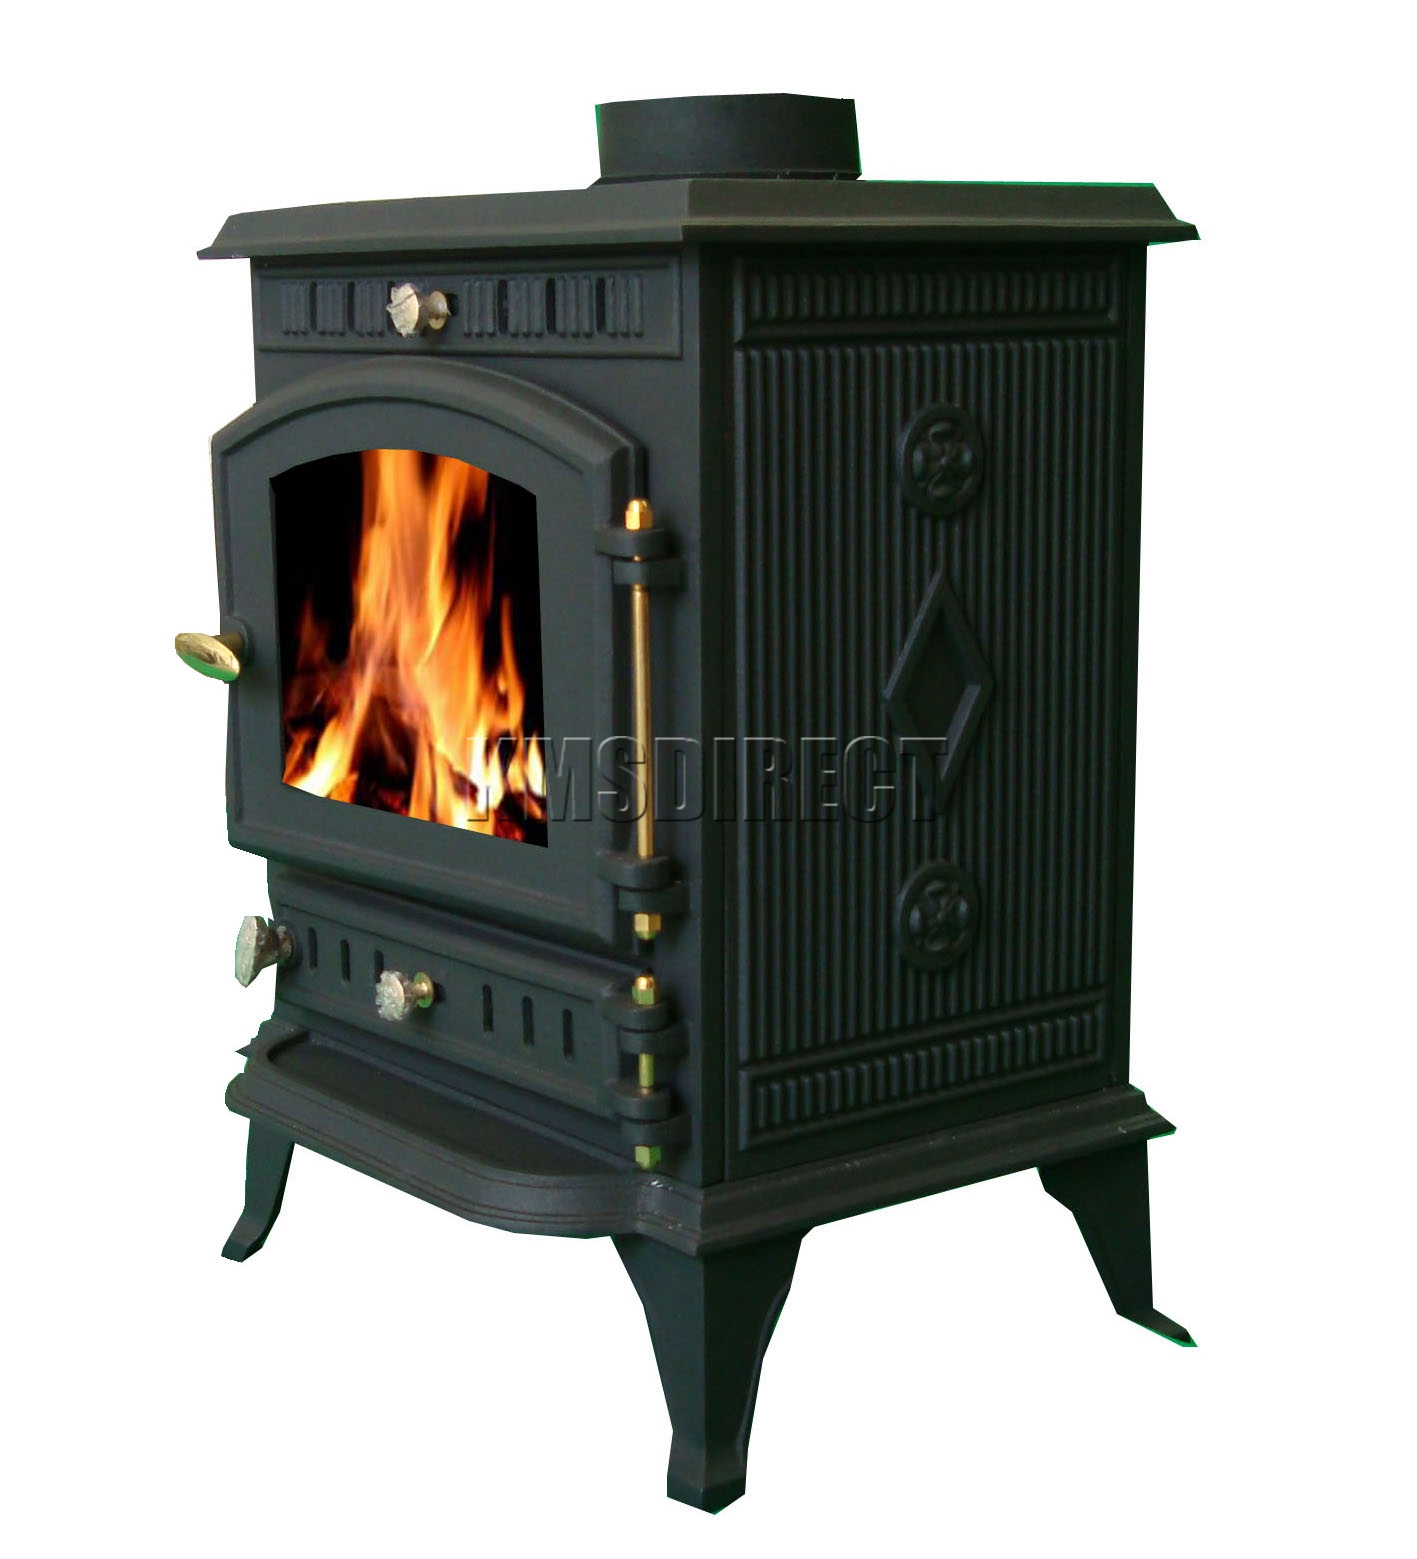 7kw ja010 high efficient cast iron log burner multifuel for Small efficient wood stoves